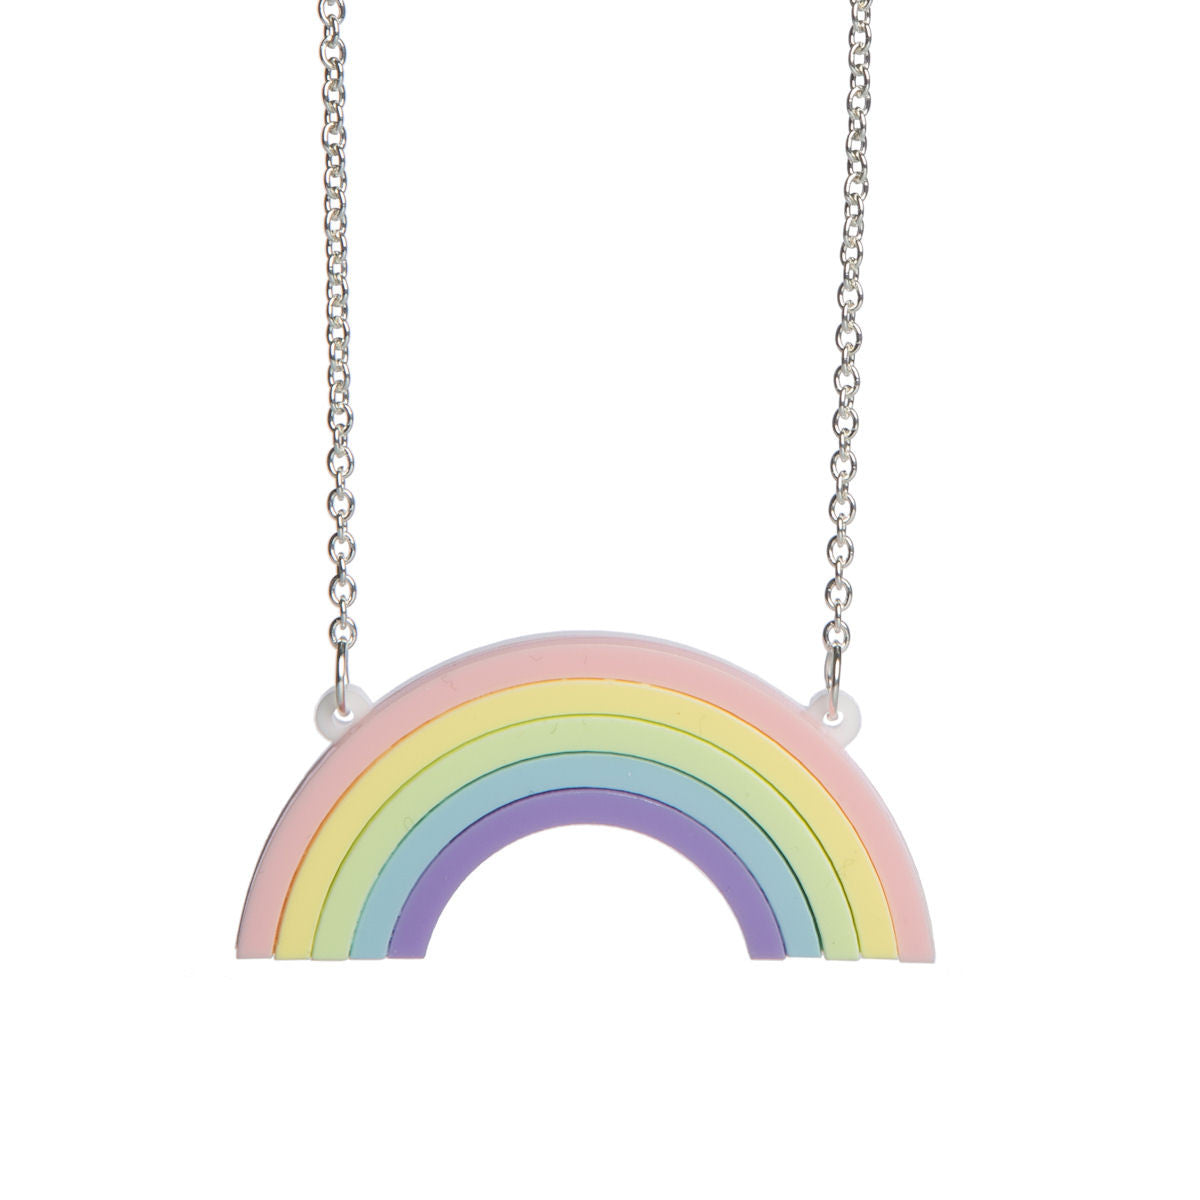 necklace svaha rainbow products apparel nebula